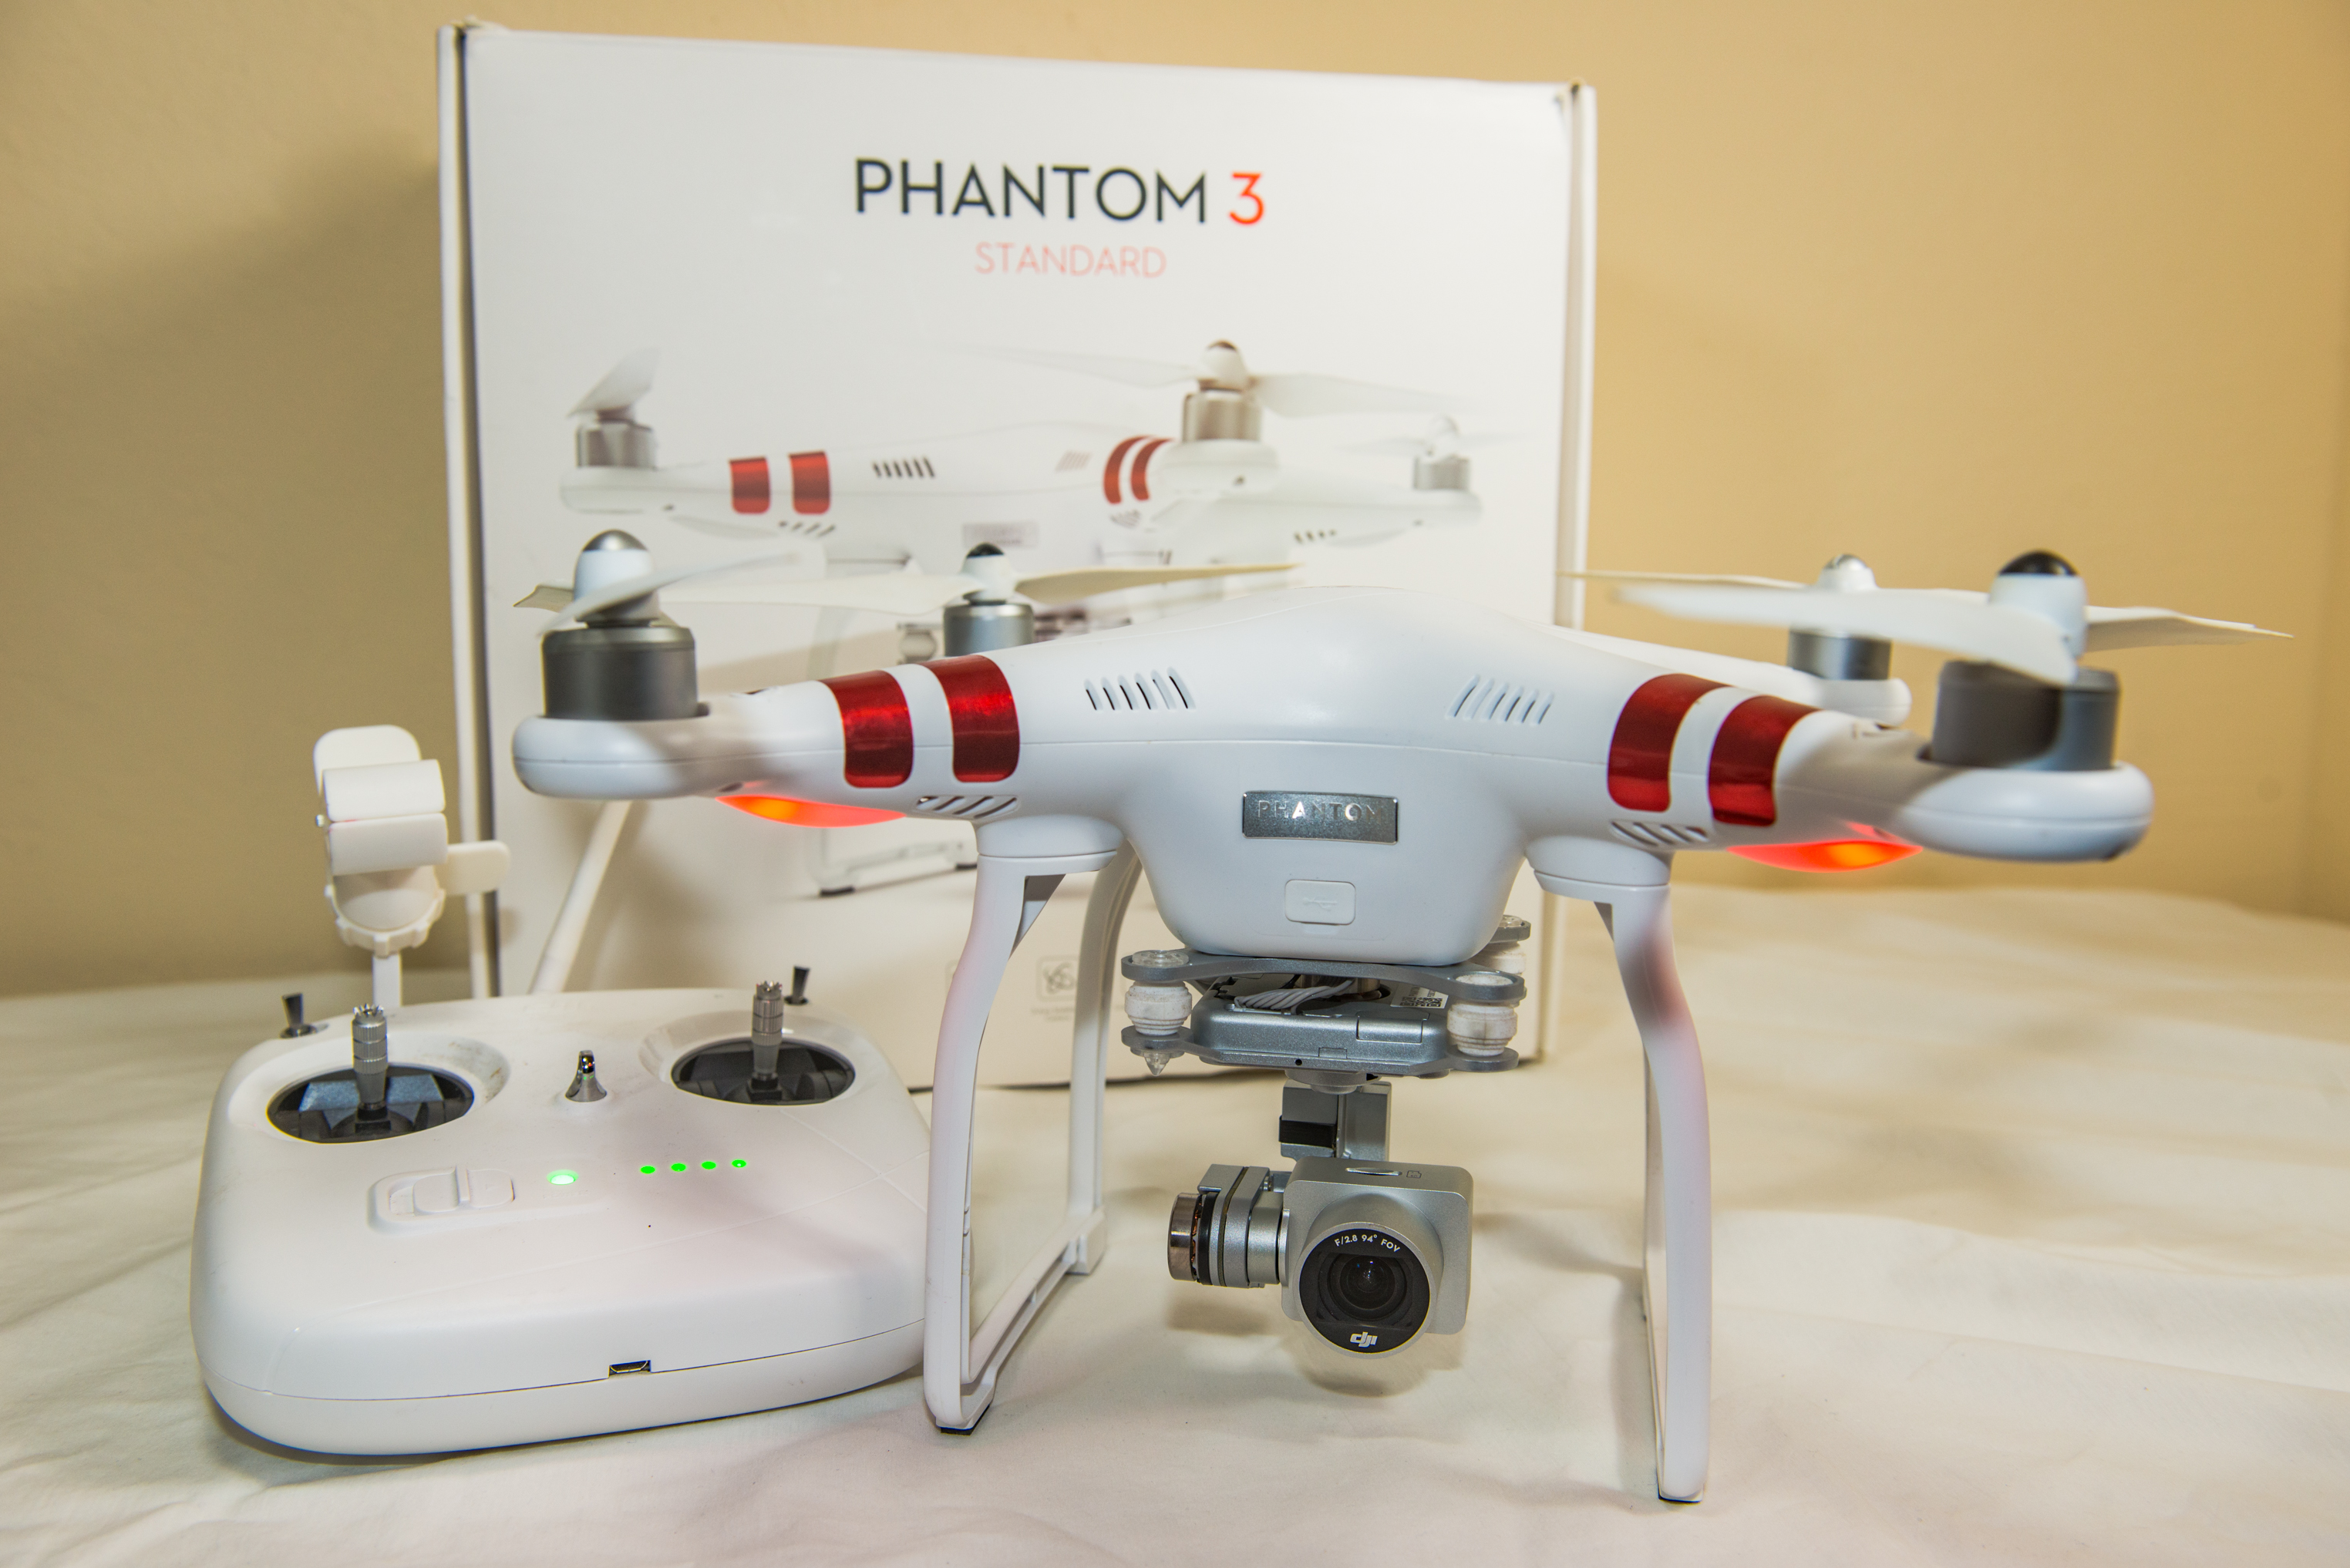 2015 Holiday Gift Guide For Drone Enthusiasts Dji Phantom 3 Standard With One Battery 27k Video Camera White The Model Of Series Is Cheapest And Most Capable Entry Level On Market Imho It Perfect